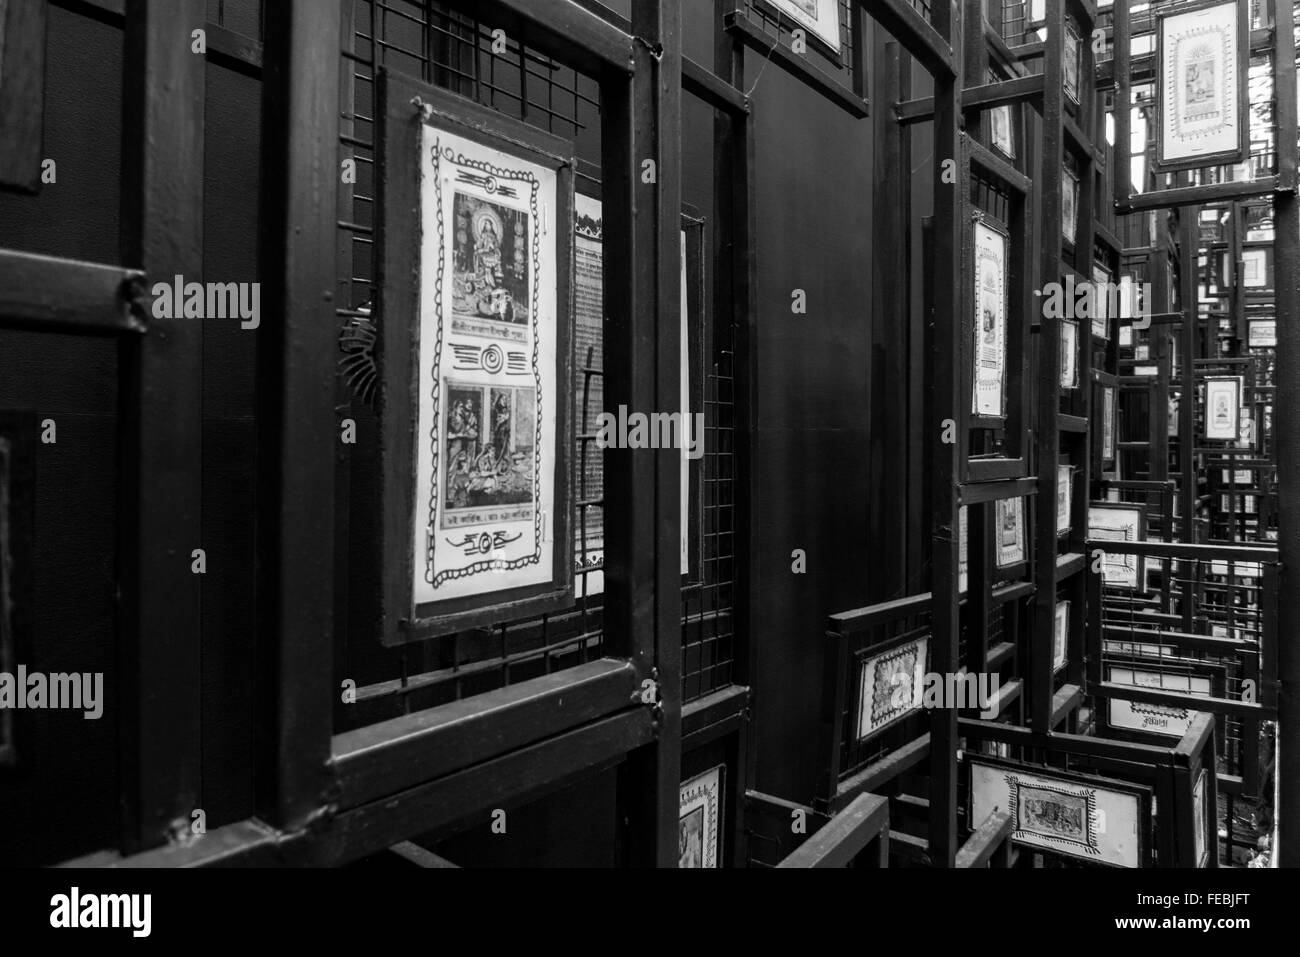 Old news clippings framed and decorated - Stock Image